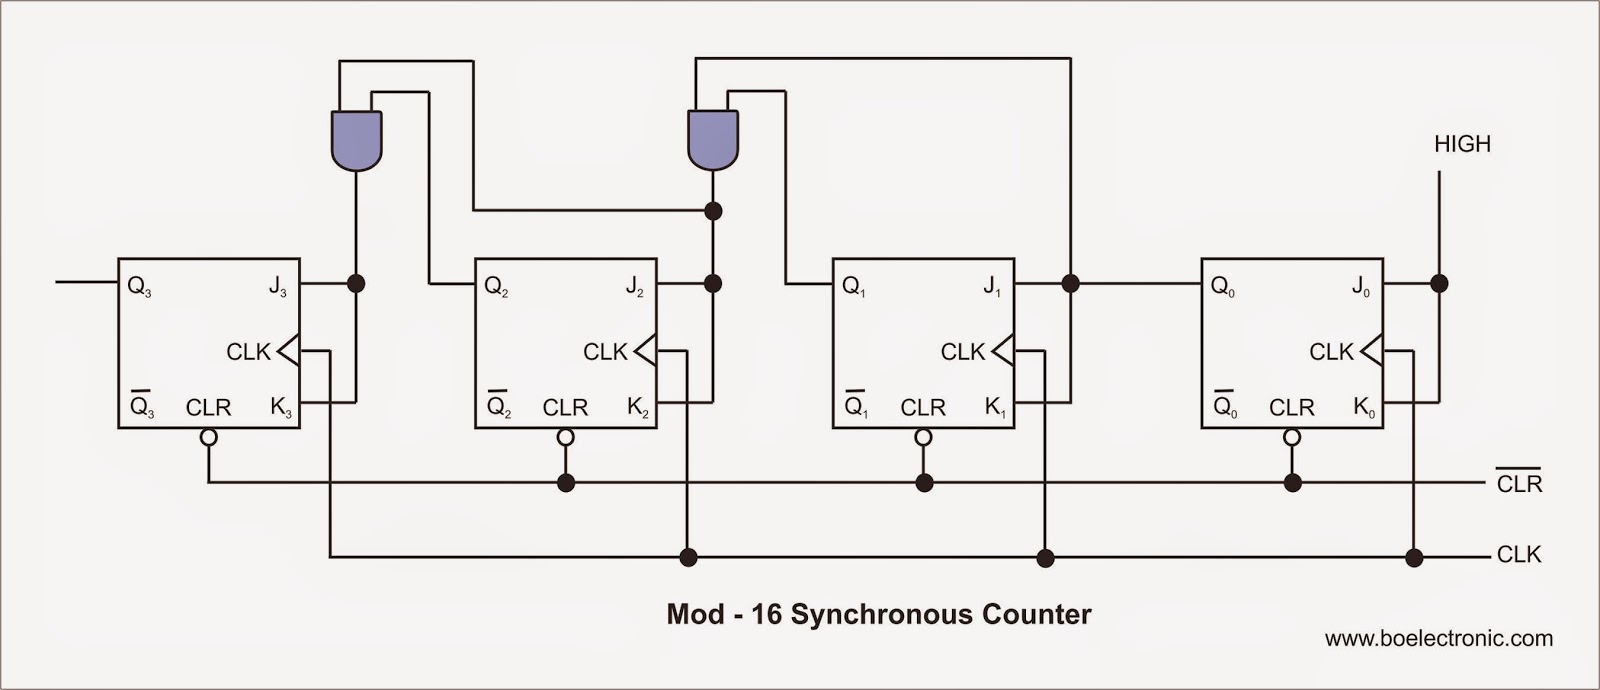 Synchronous Counter Mod 17 0 9 Circuit Diagram Generator Basics Simple Guide To Rewire Your